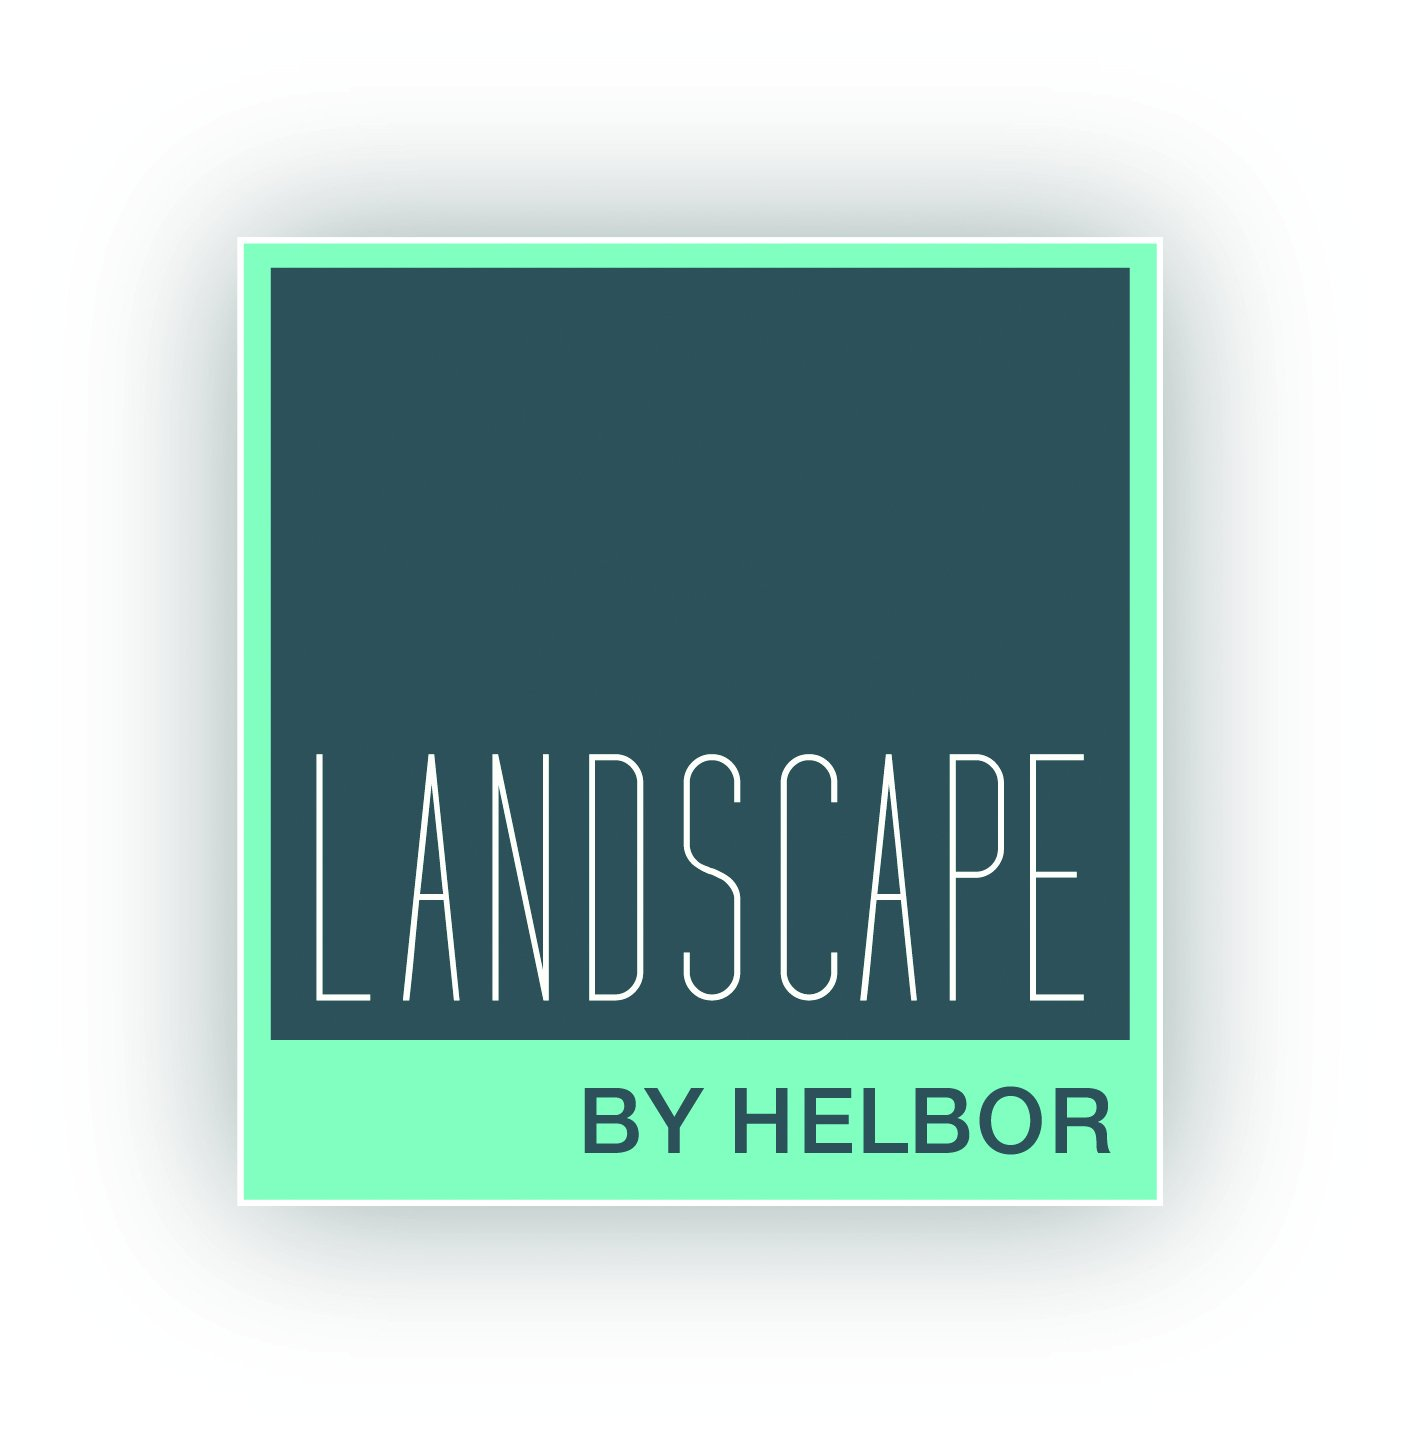 Landscape by helbor